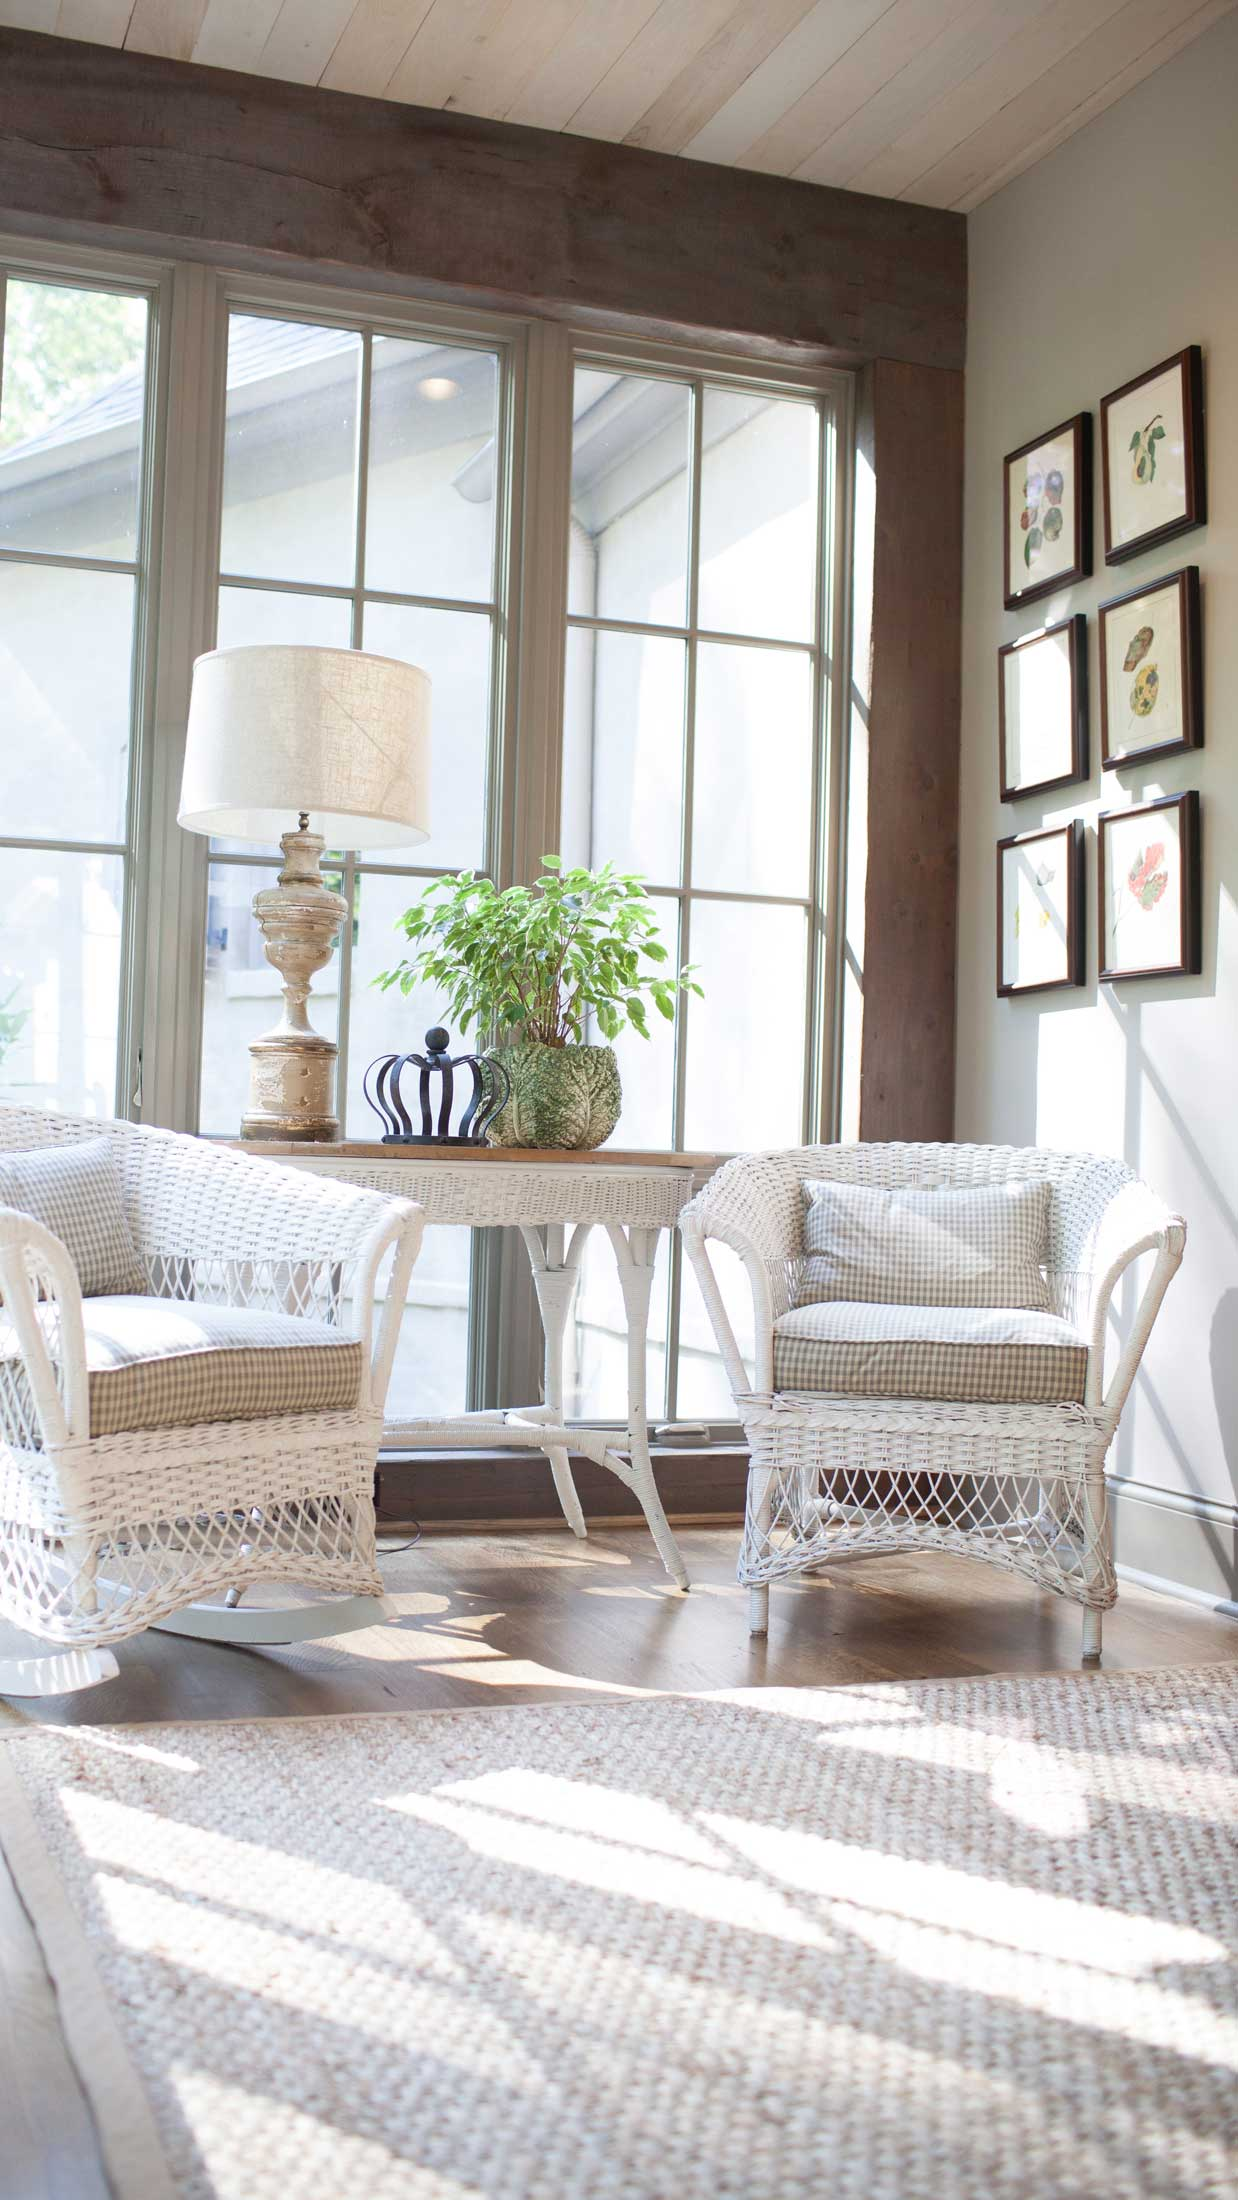 wicker seating in sunroom